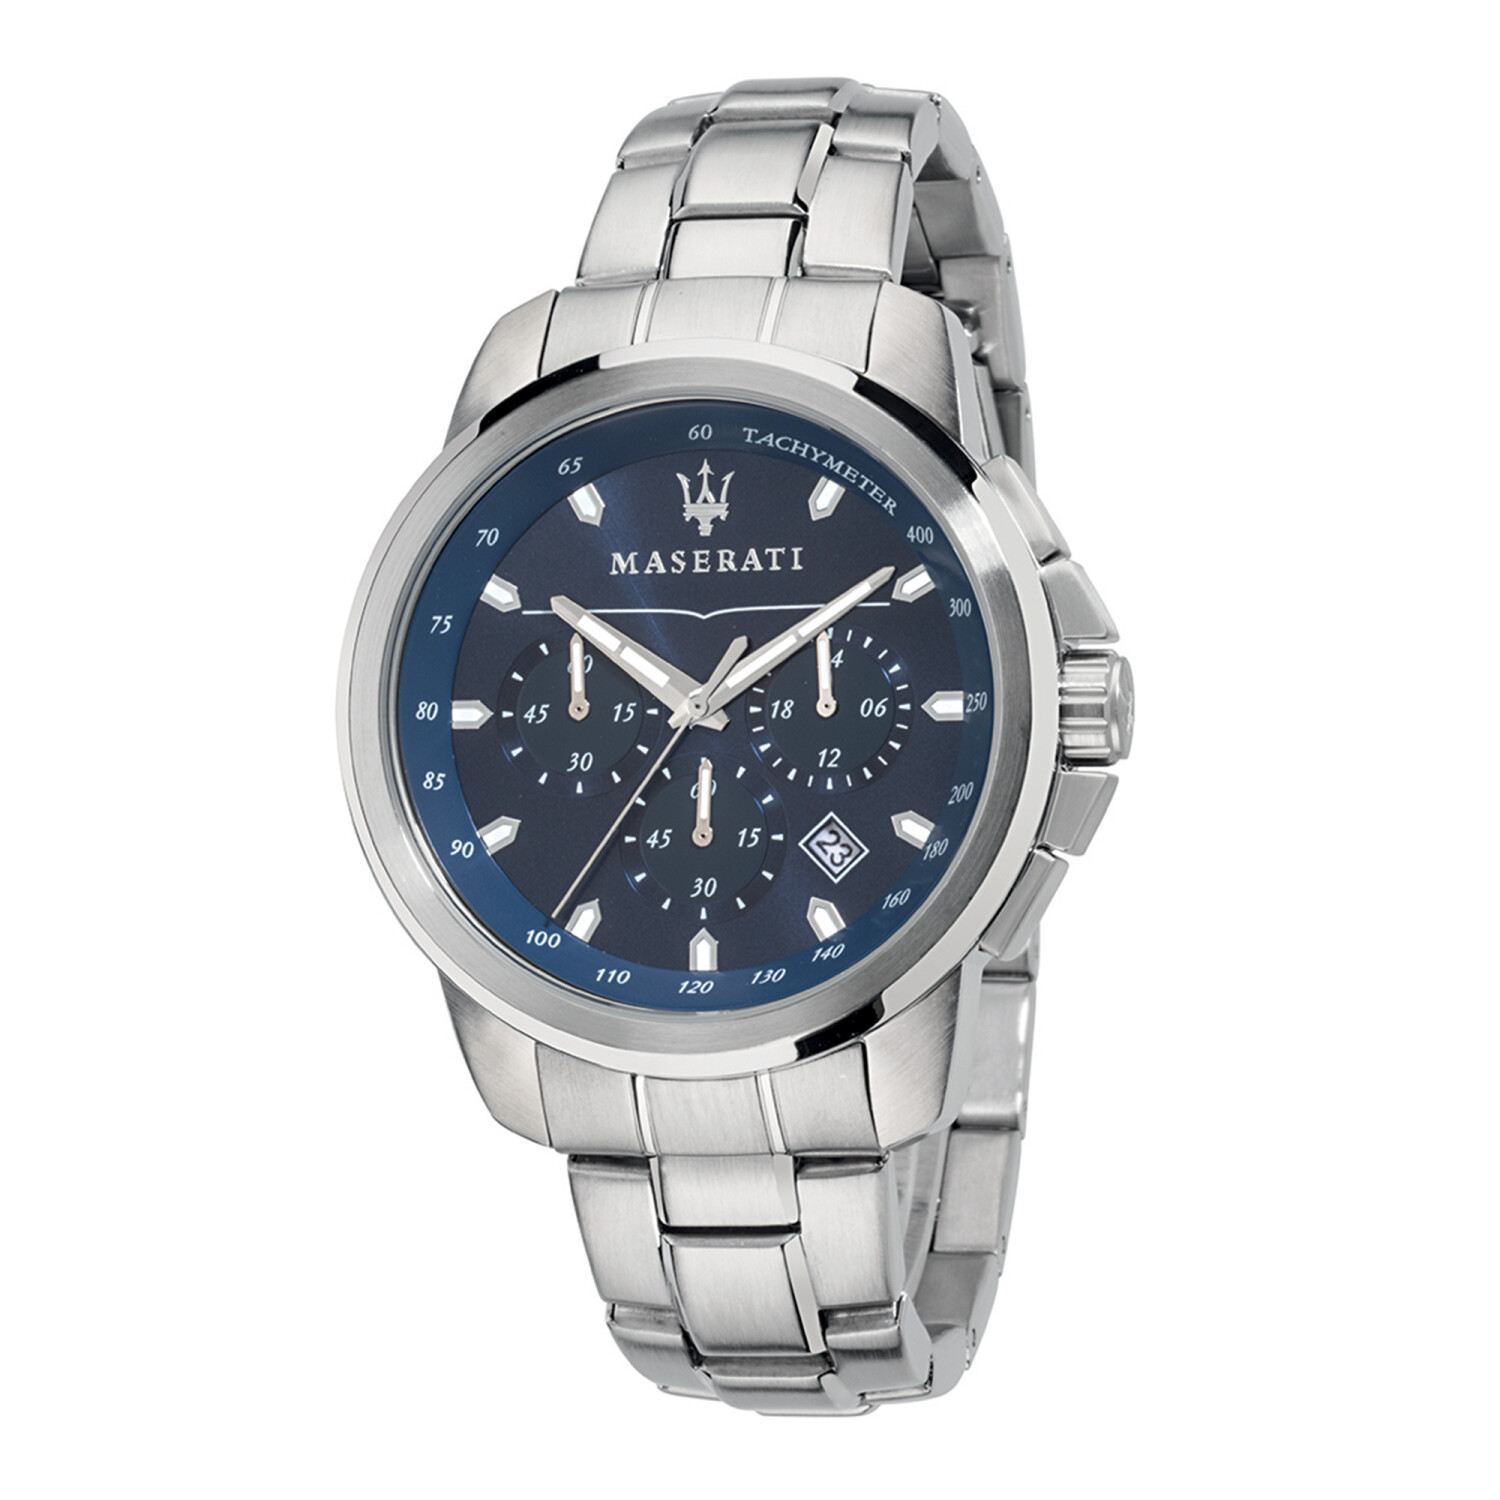 Maserati Watch R8873621002 Successo Chronograph, Tachymeter, 24-Hour Display, Date Window-Blue / Stainless Steel